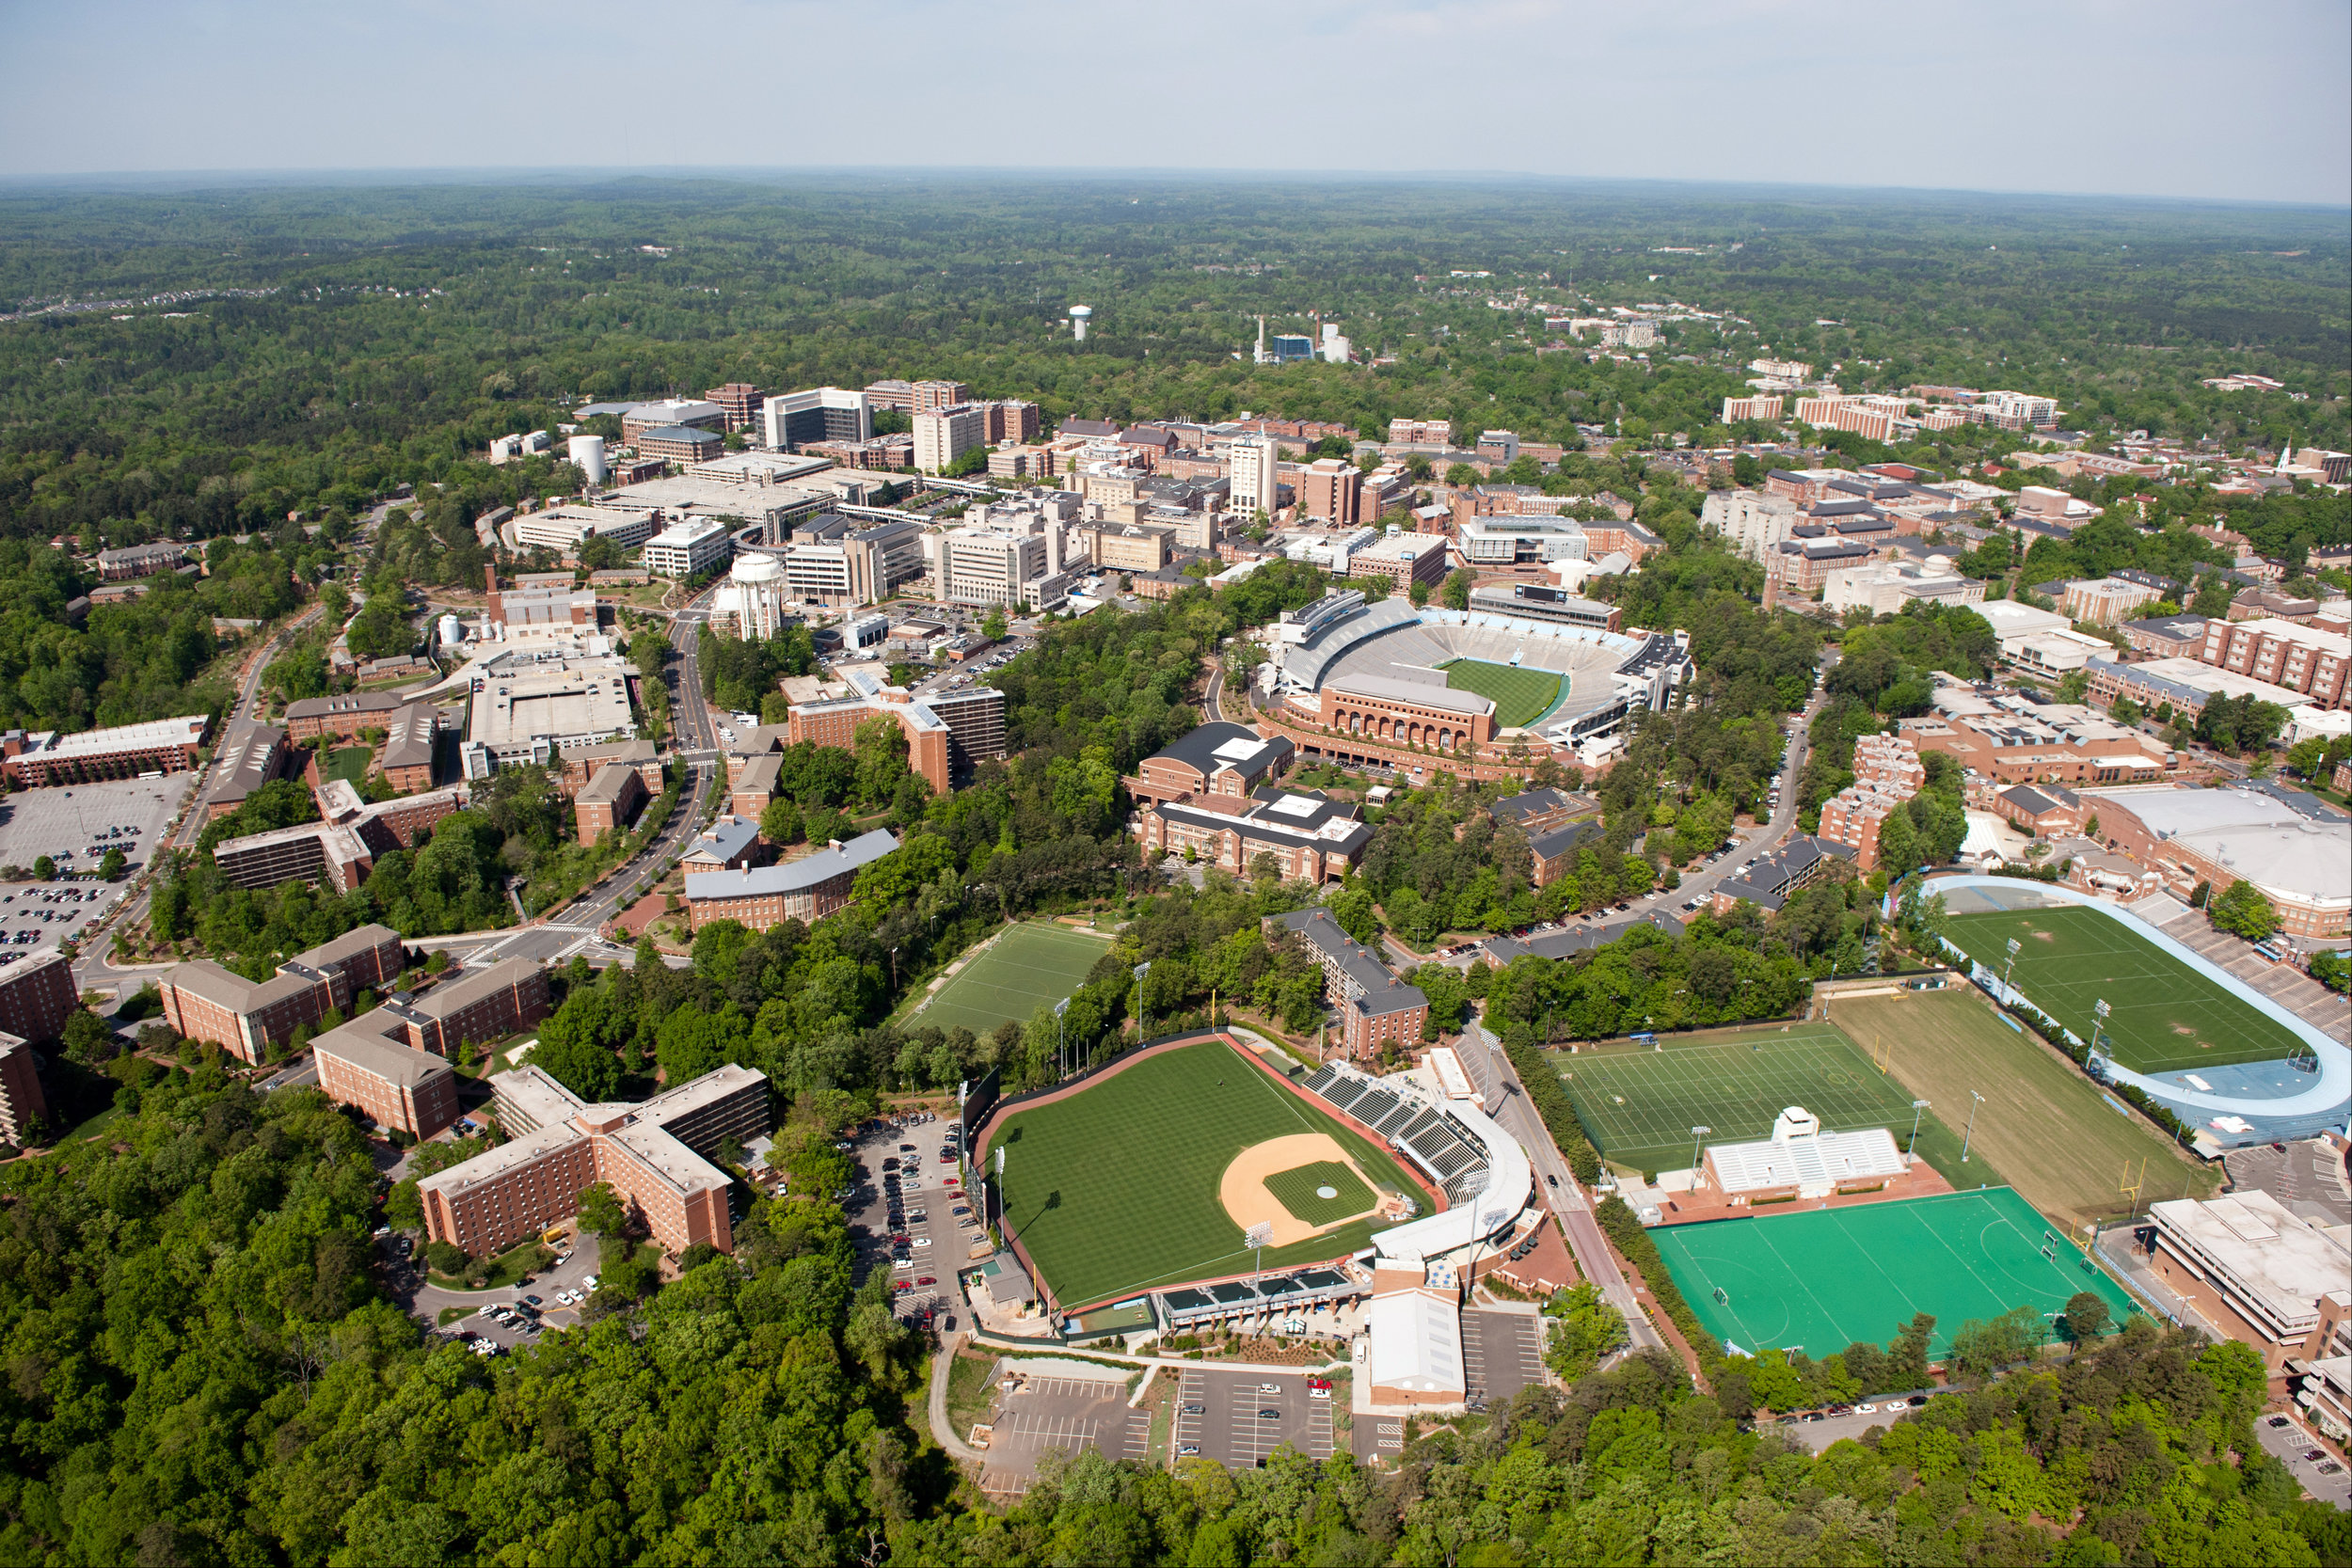 Chapel hill from the air.jpg